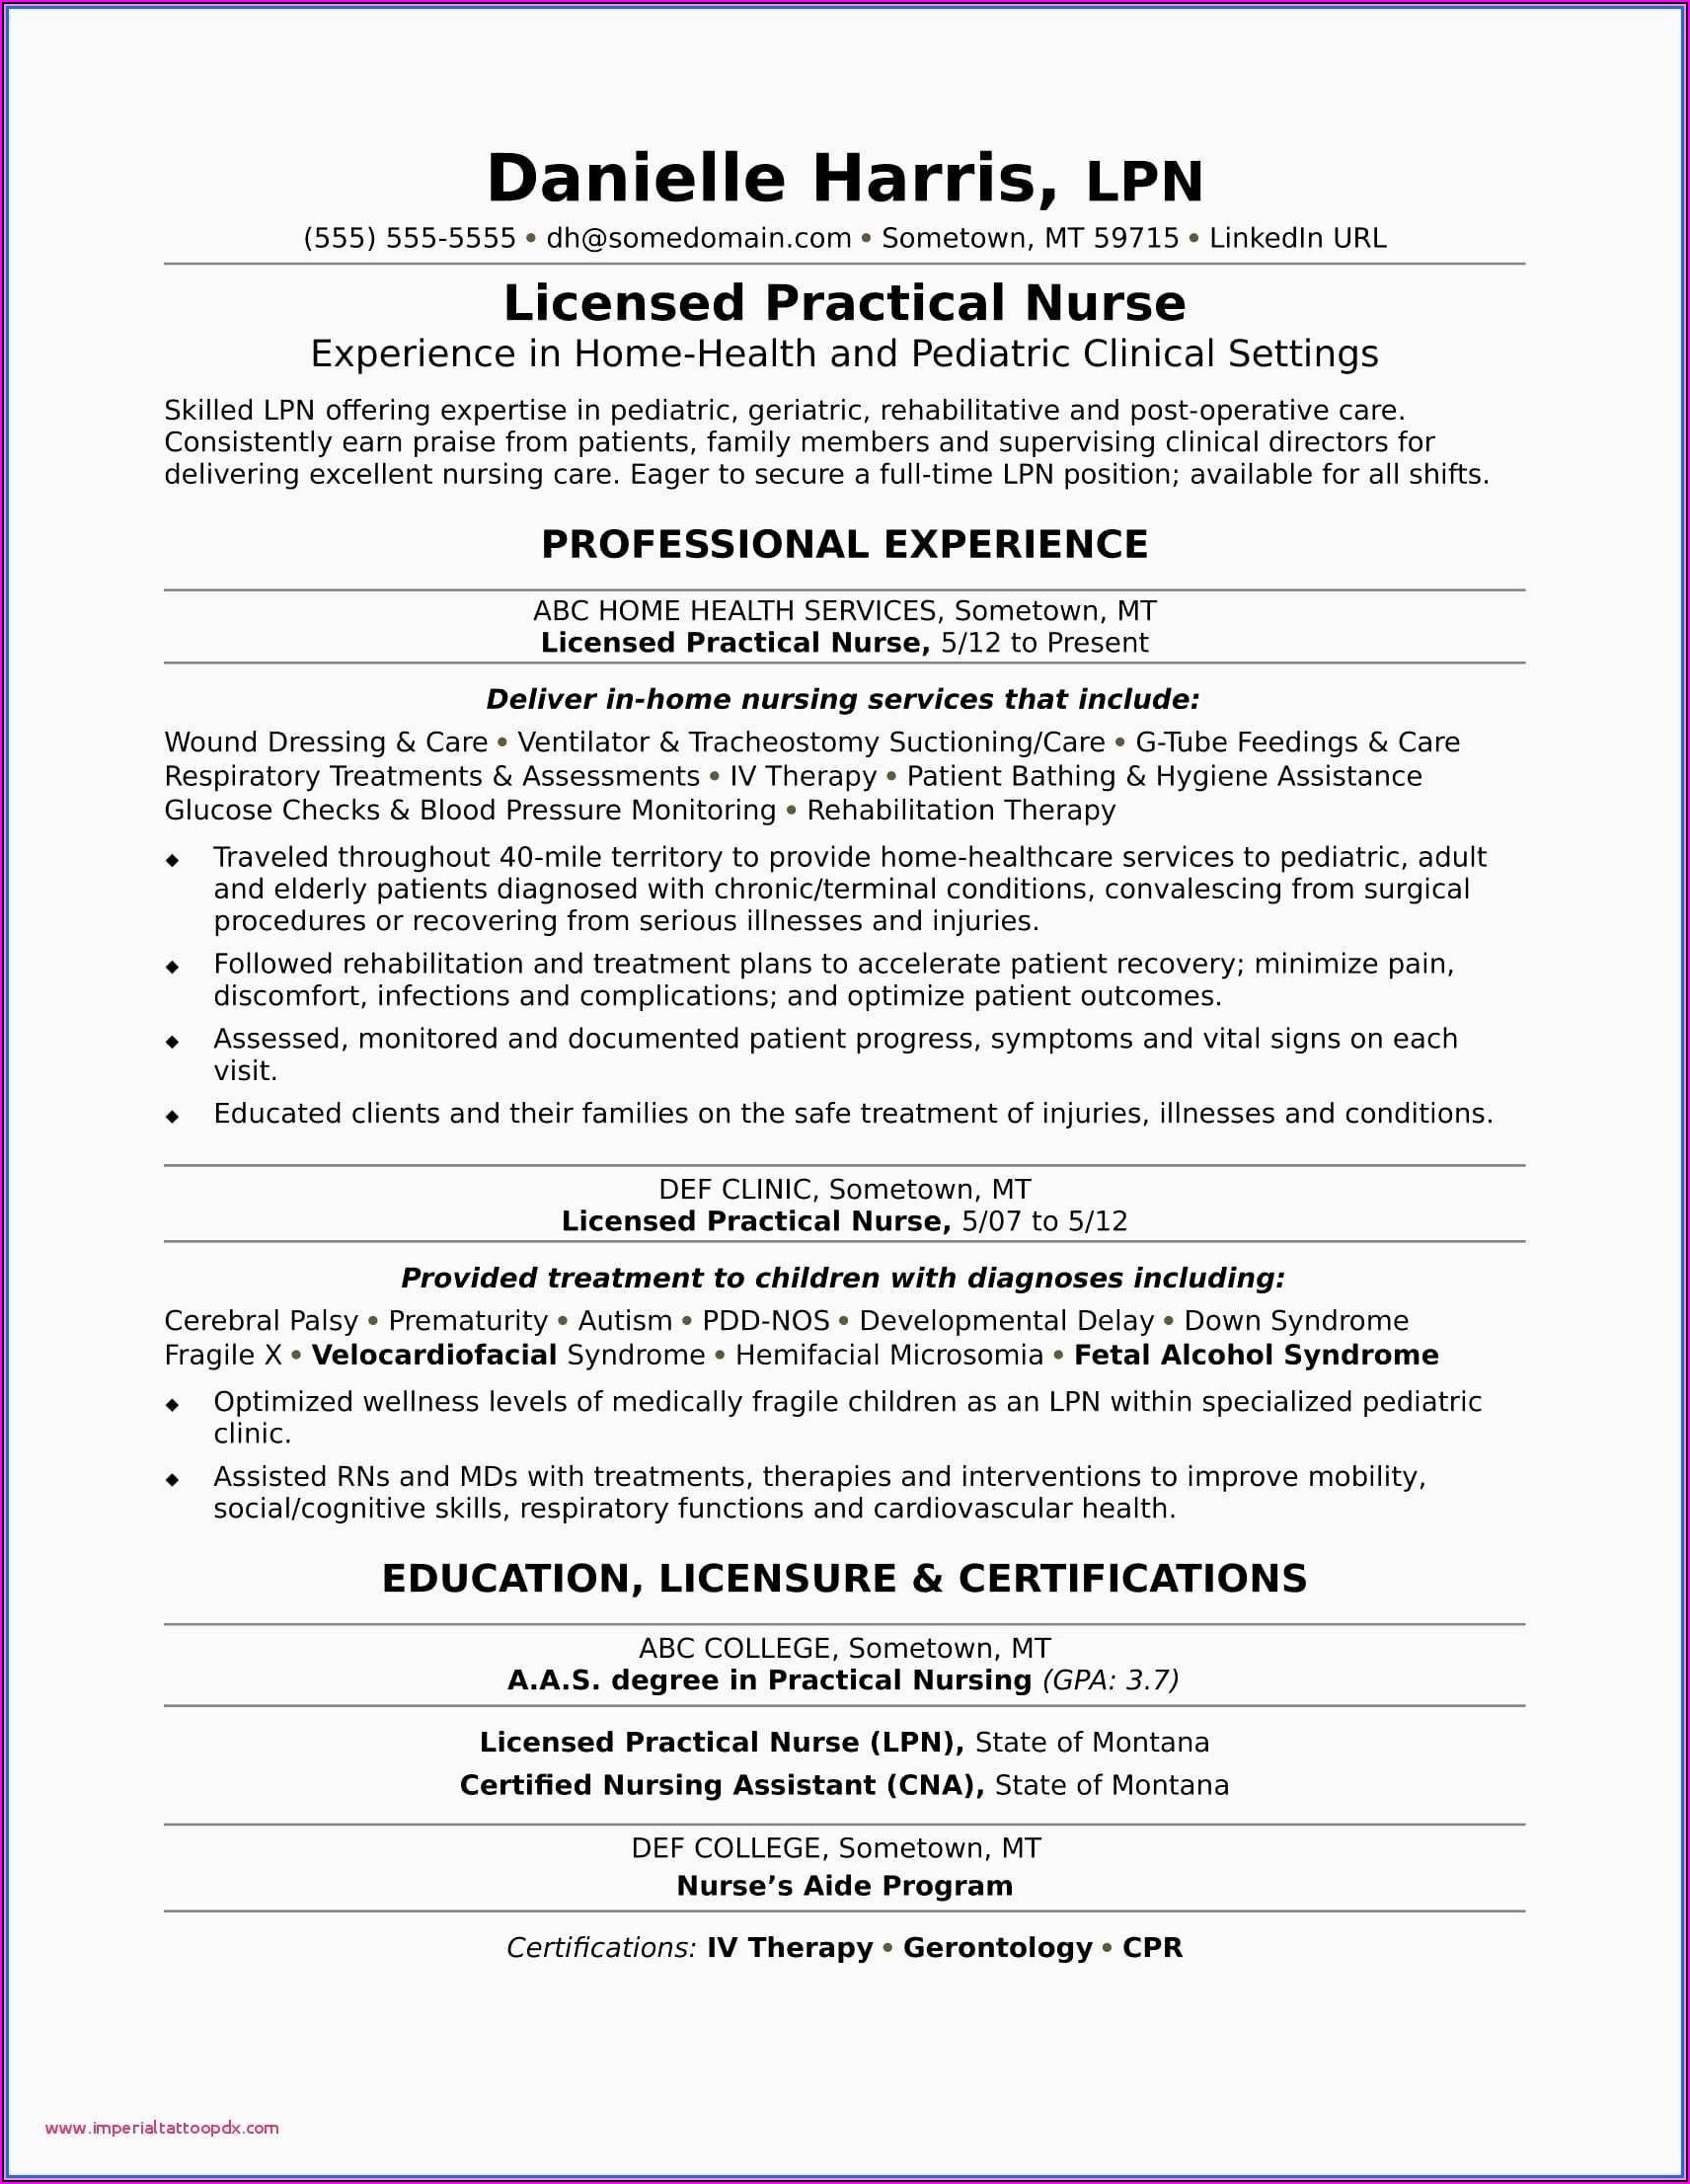 Nursing Assistant Customer Service Resume